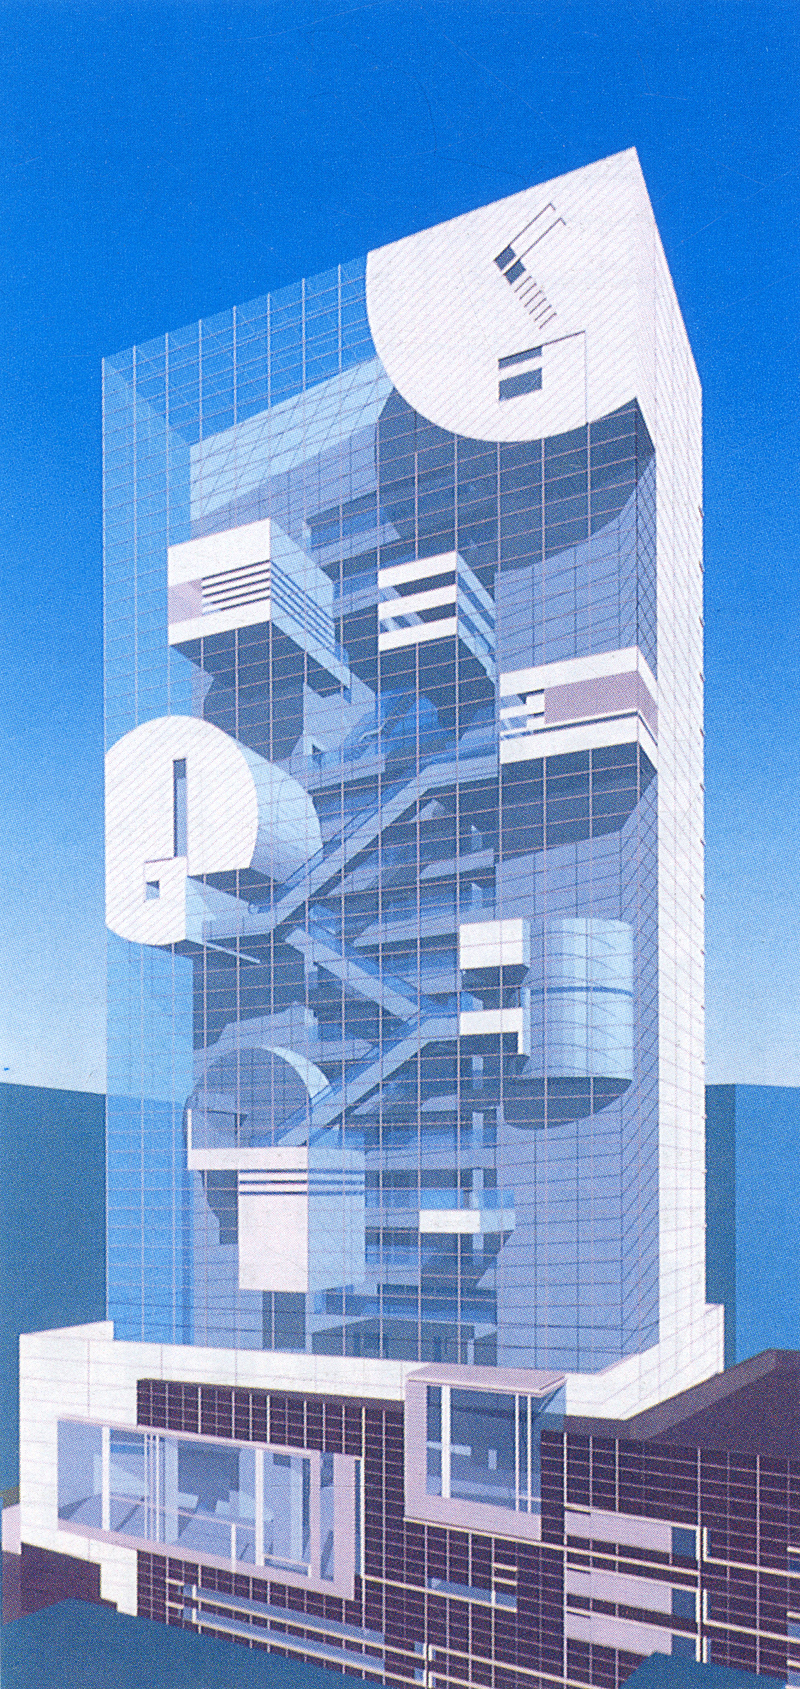 Shin Takamatsu. Arquitectura Viva v. 29 March-April 1993, 92